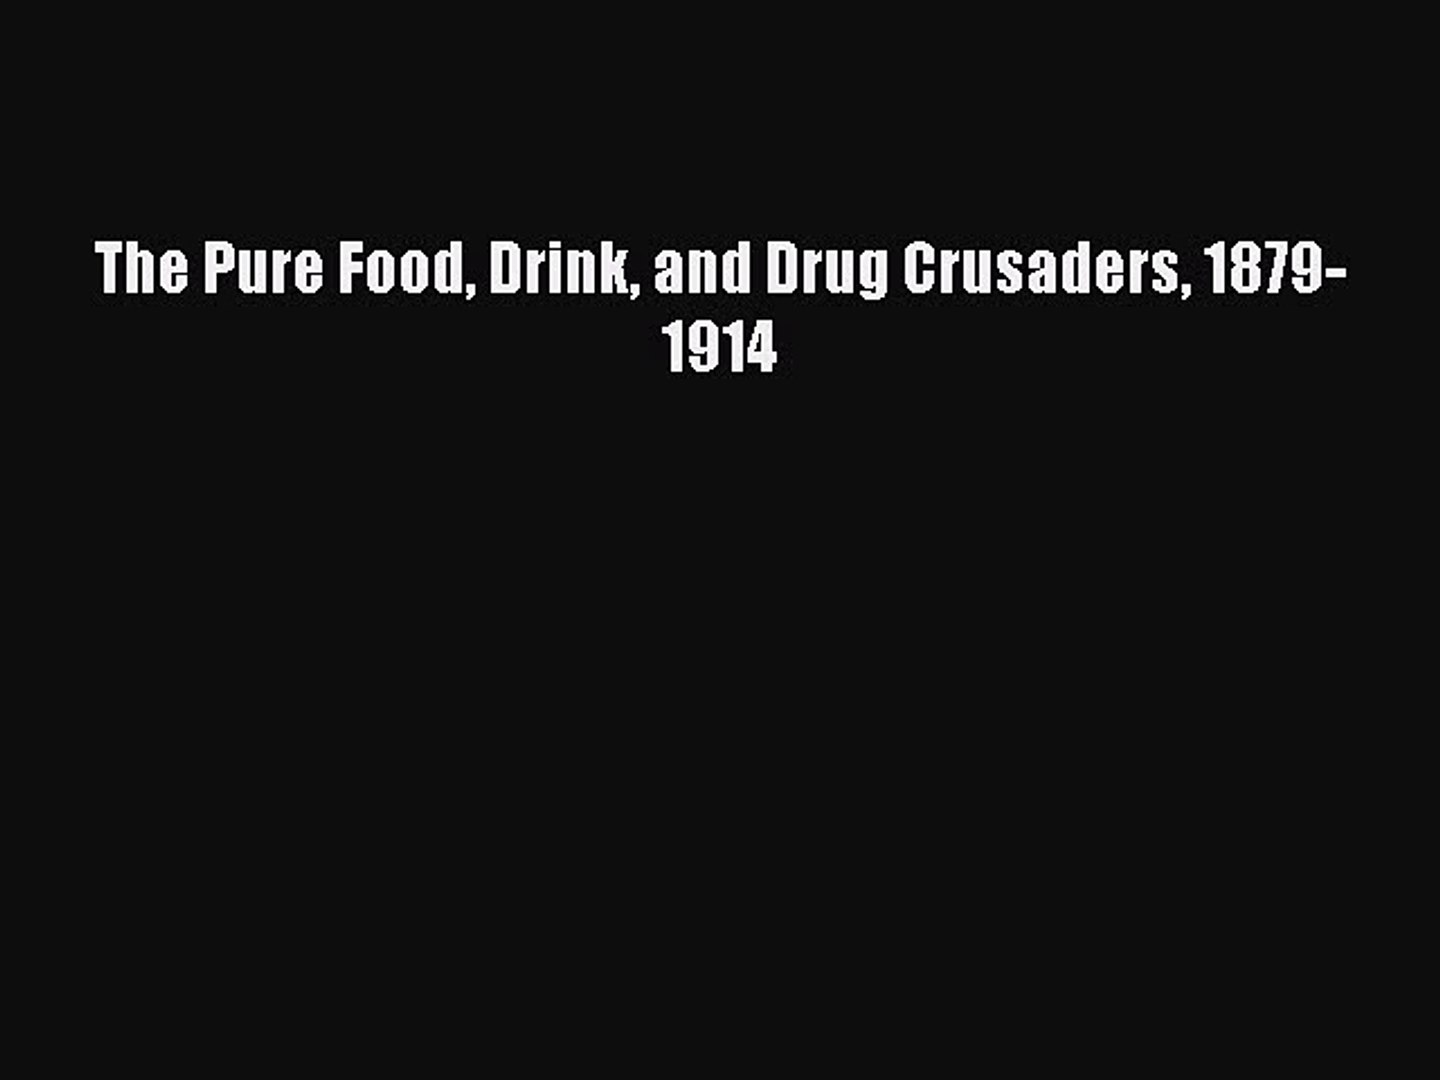 [Online PDF] The Pure Food Drink and Drug Crusaders 1879-1914 Free Books